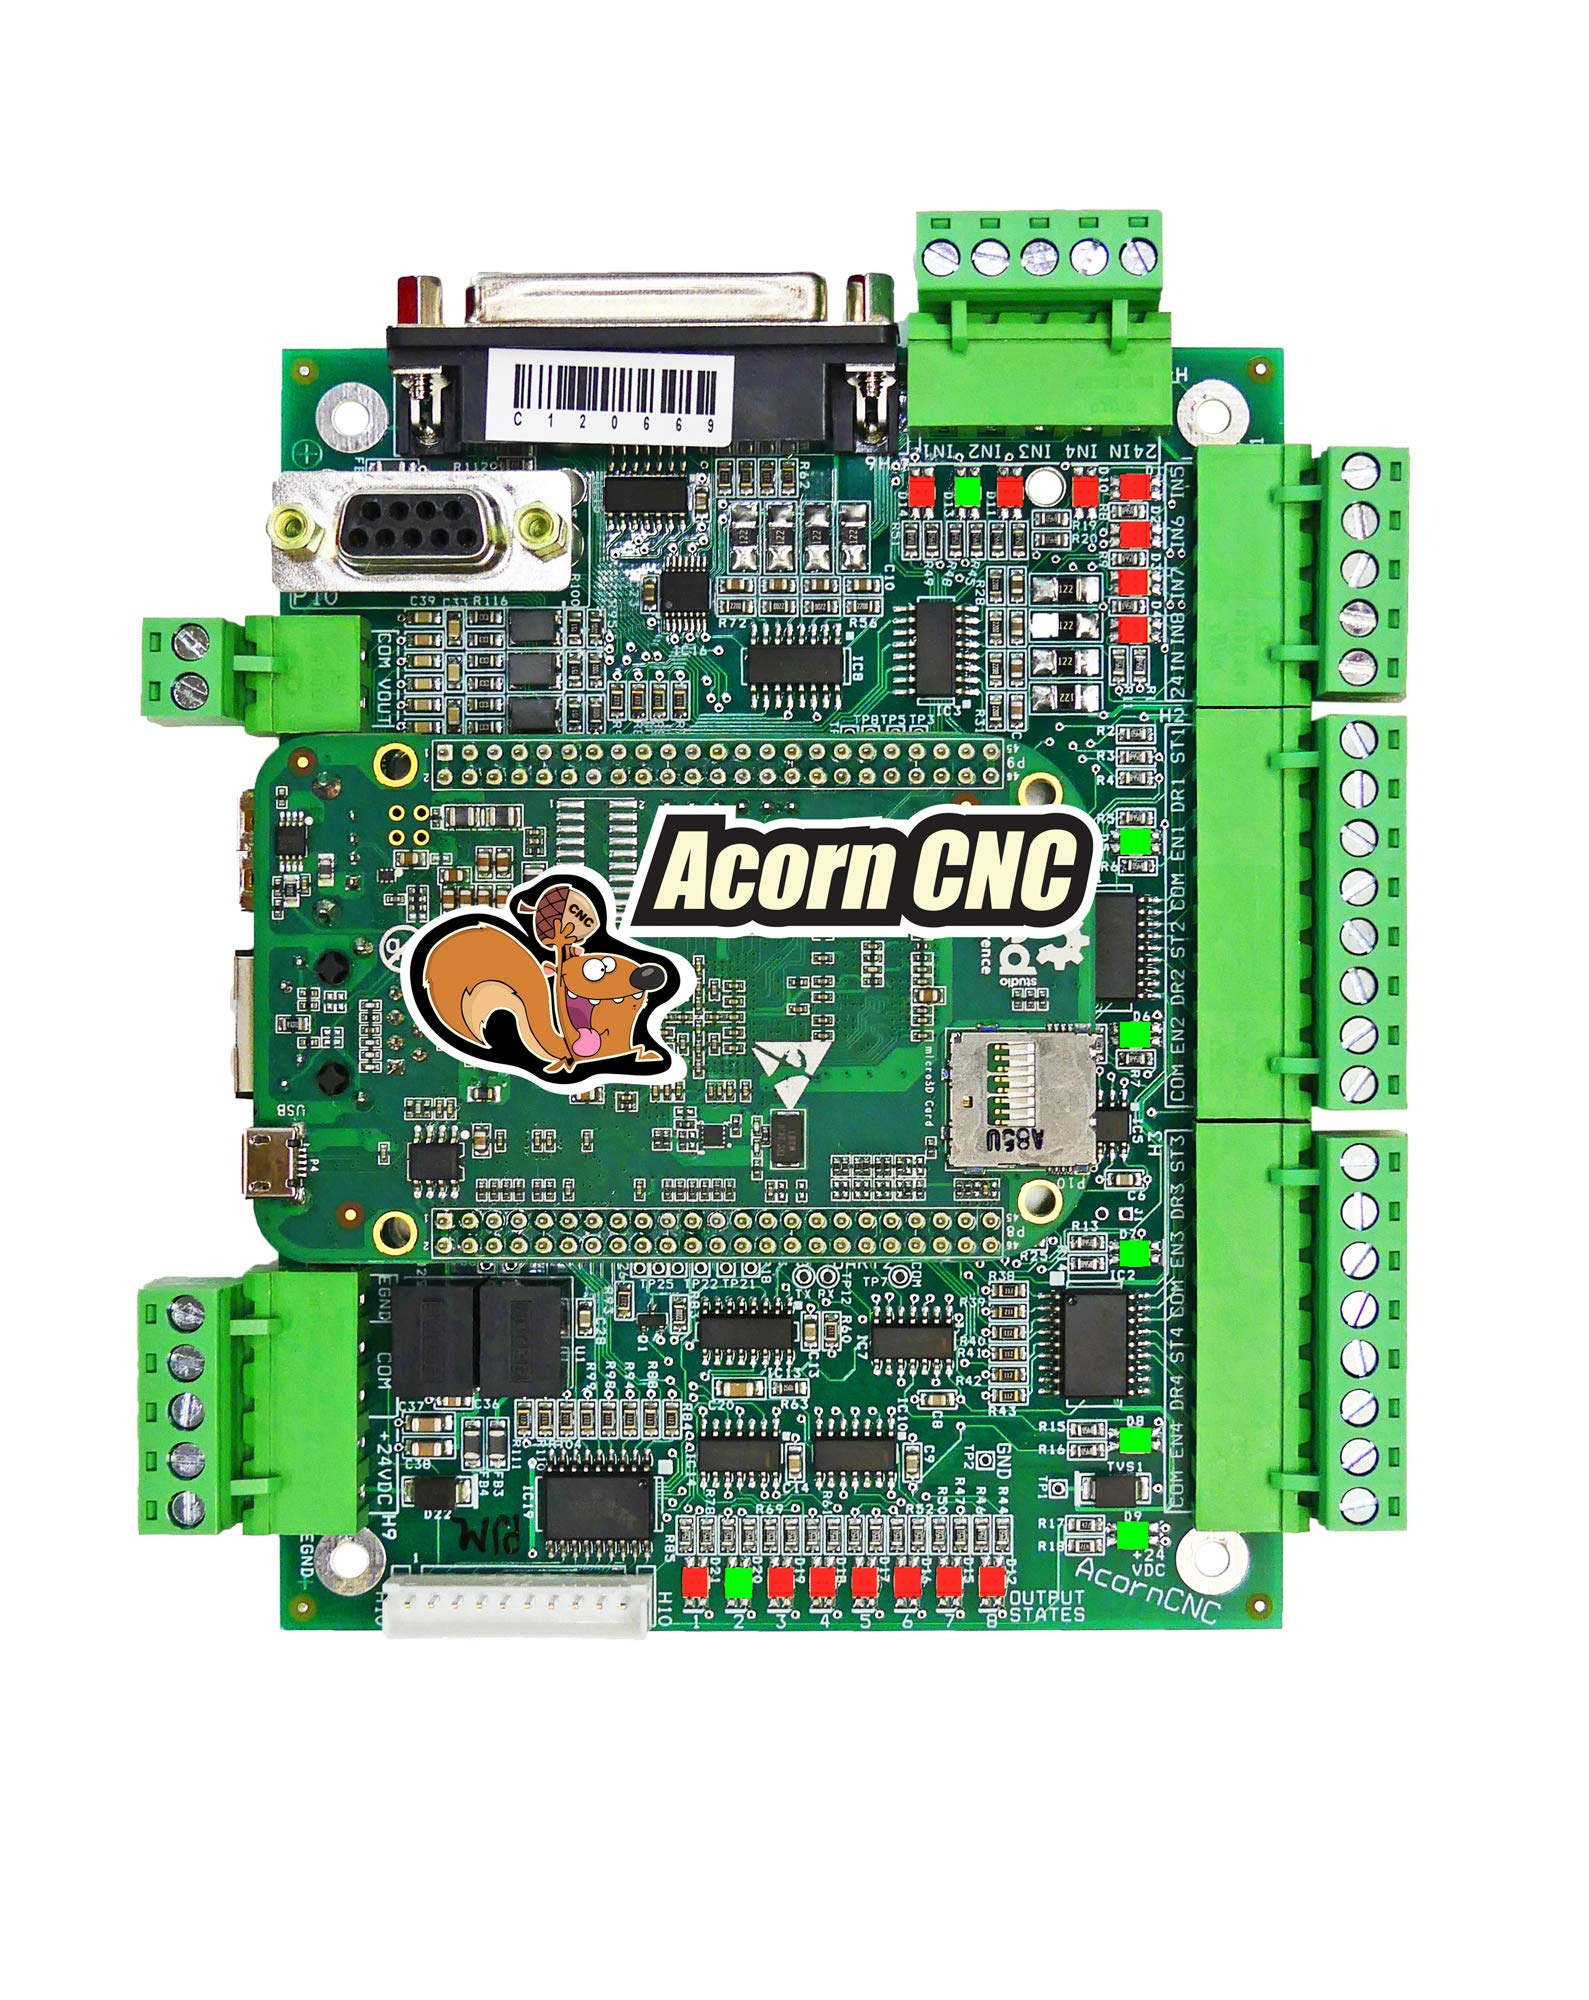 Centroid 4 axis Acorn DIY CNC motion controller kit (REV 4) with CNC  software, replaces MachMotion,WinCNC,Mach3,EMC2,KCAM4,Smooth Stepper